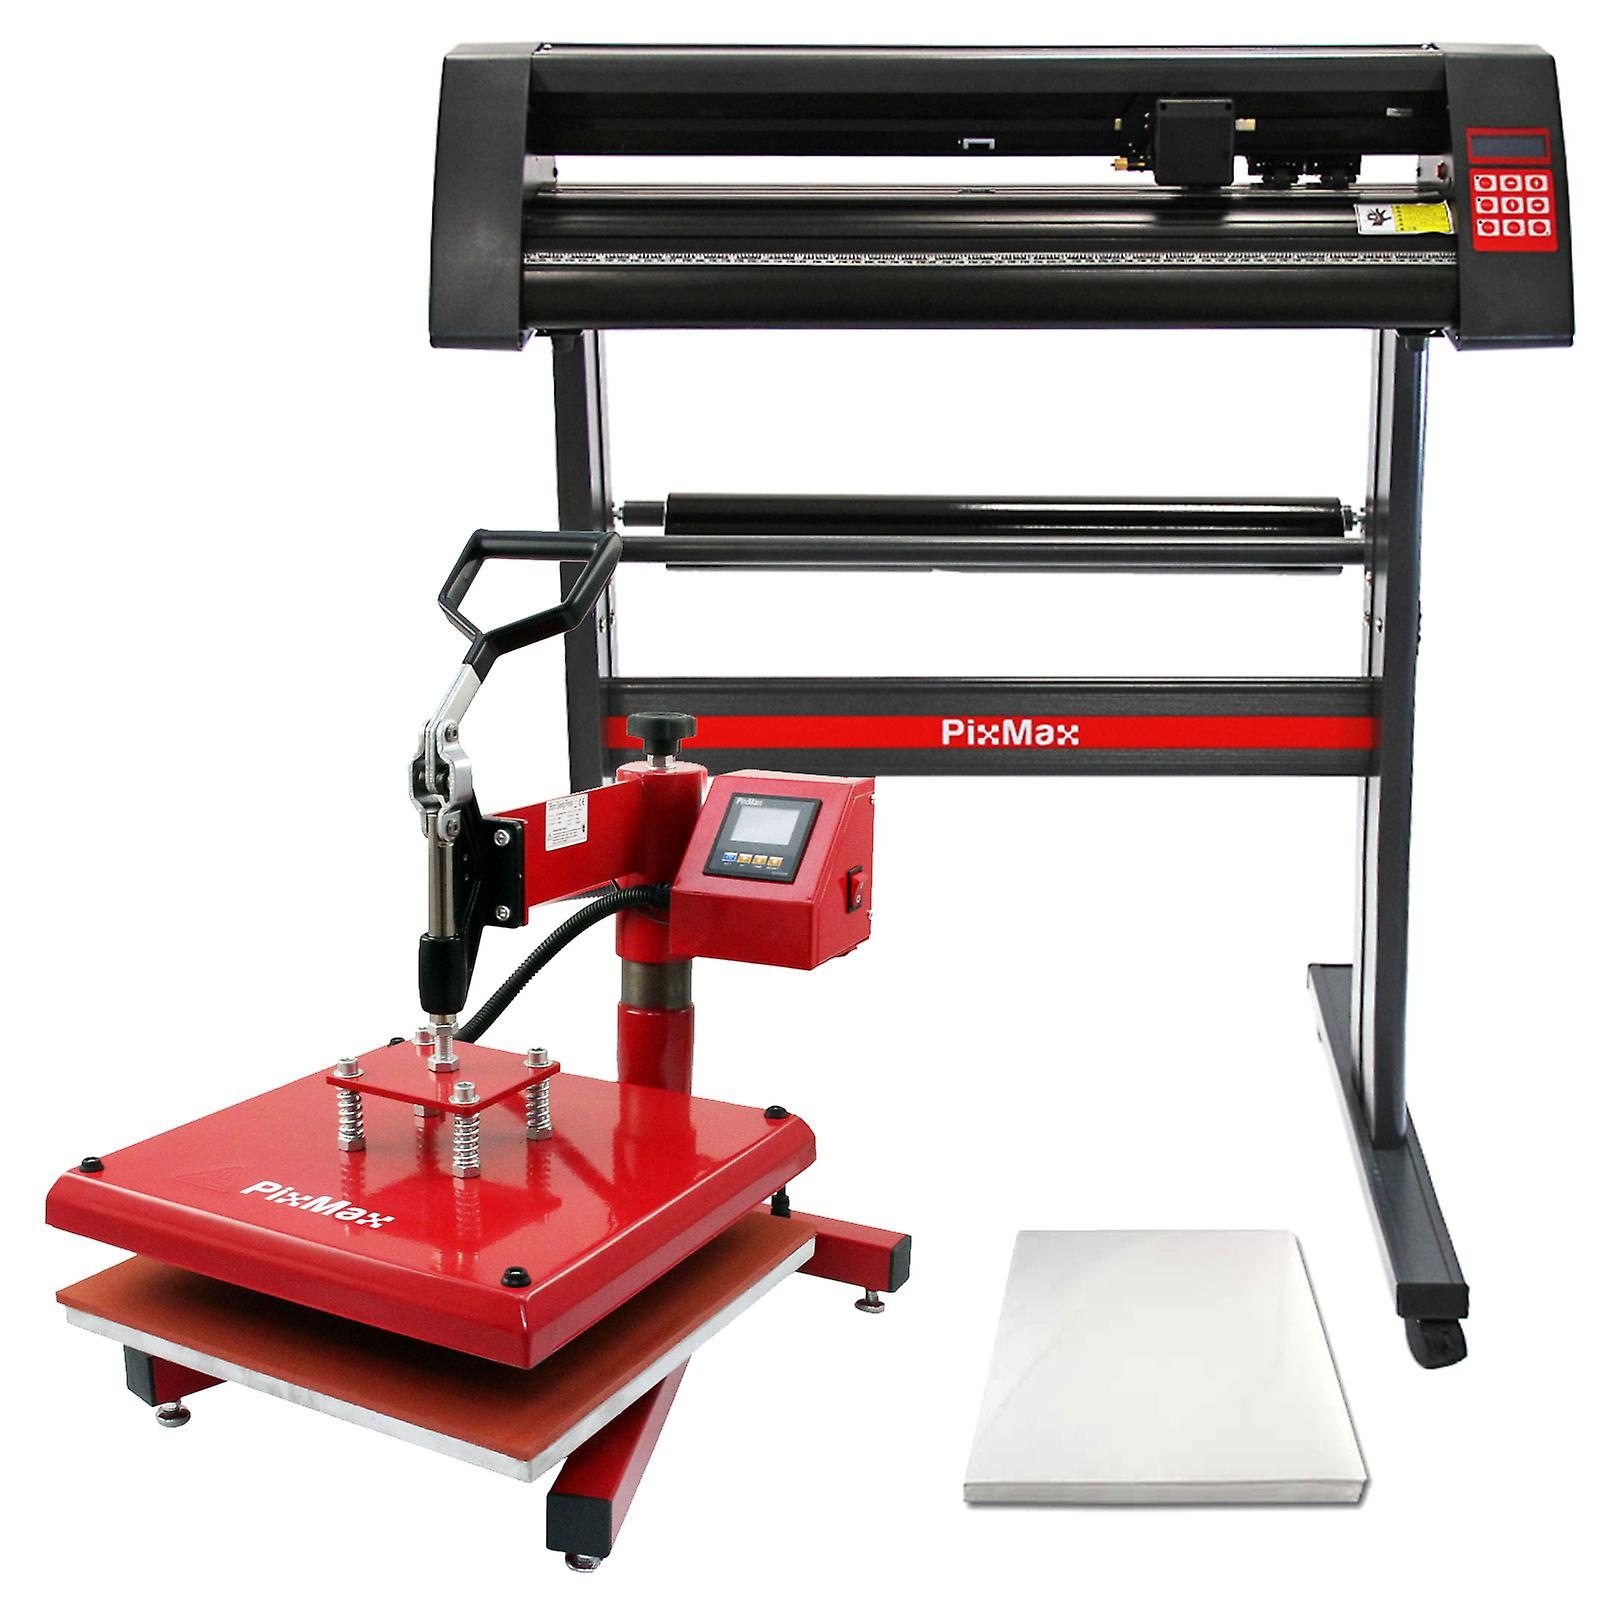 Sublimation Press Pixmax 38cm Swing Heat Press Vinyl Cutter Printer